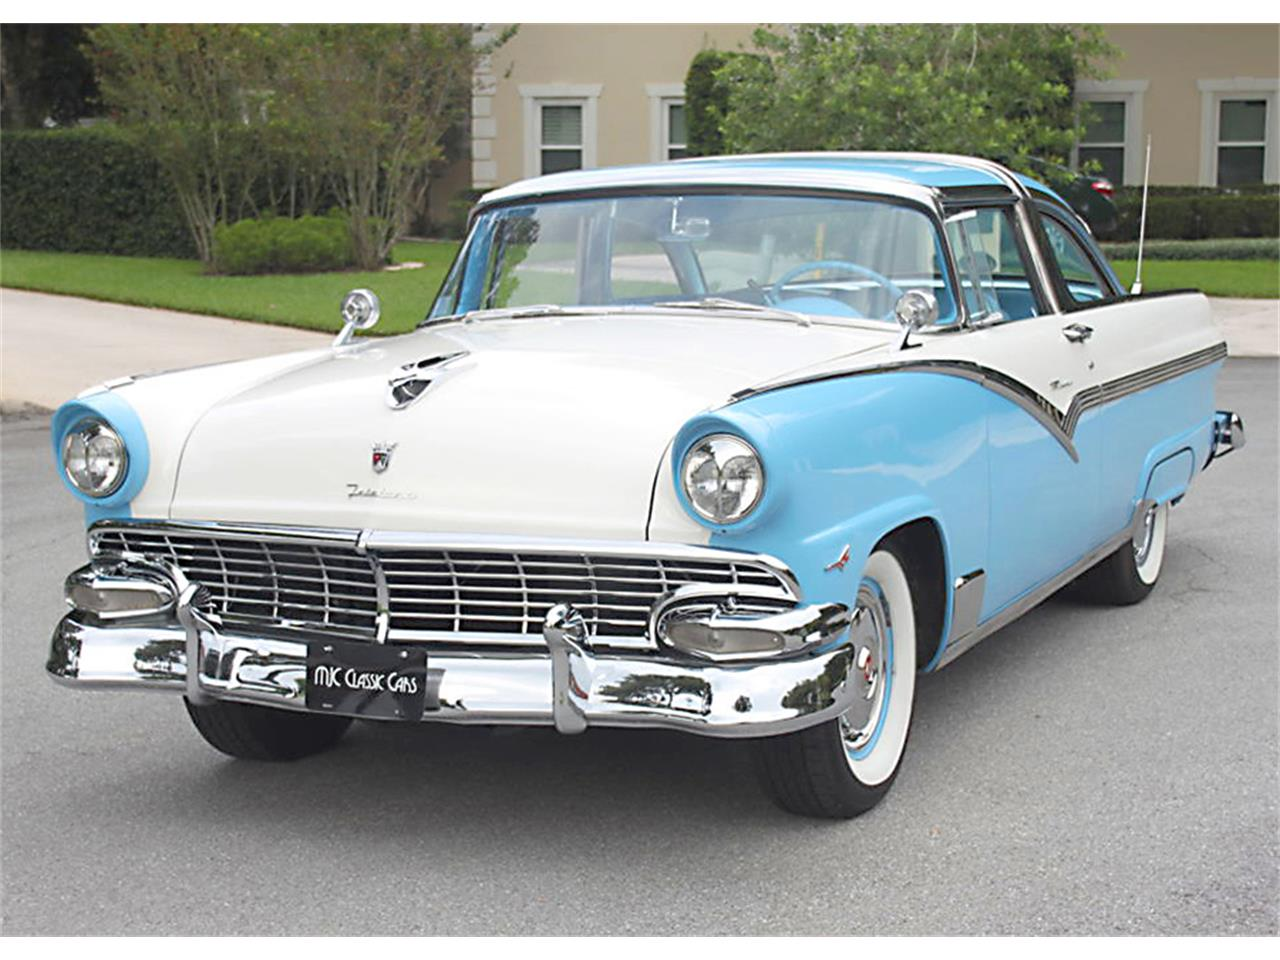 Large picture of 1956 ford crown victoria located in florida 39500 00 oeqi